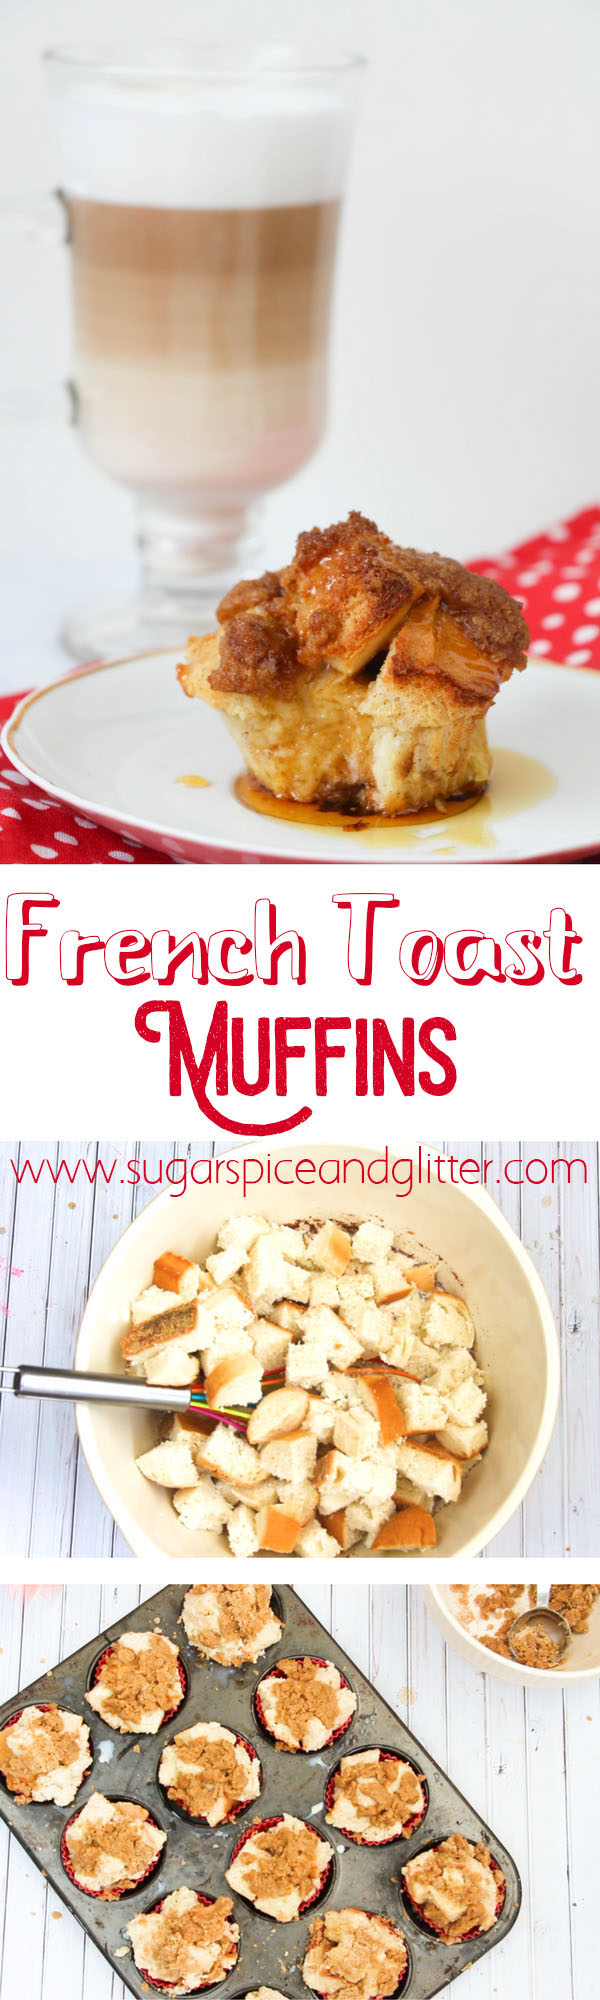 Super easy to make and absolutely delicious, these French Toast Muffins are a grab-and-go version of the brunch classic, so you can enjoy French Toast even in the middle of the week! Topped with a crunchy crumb topping, these French Toast Muffins are a delicious treat your whole family will love